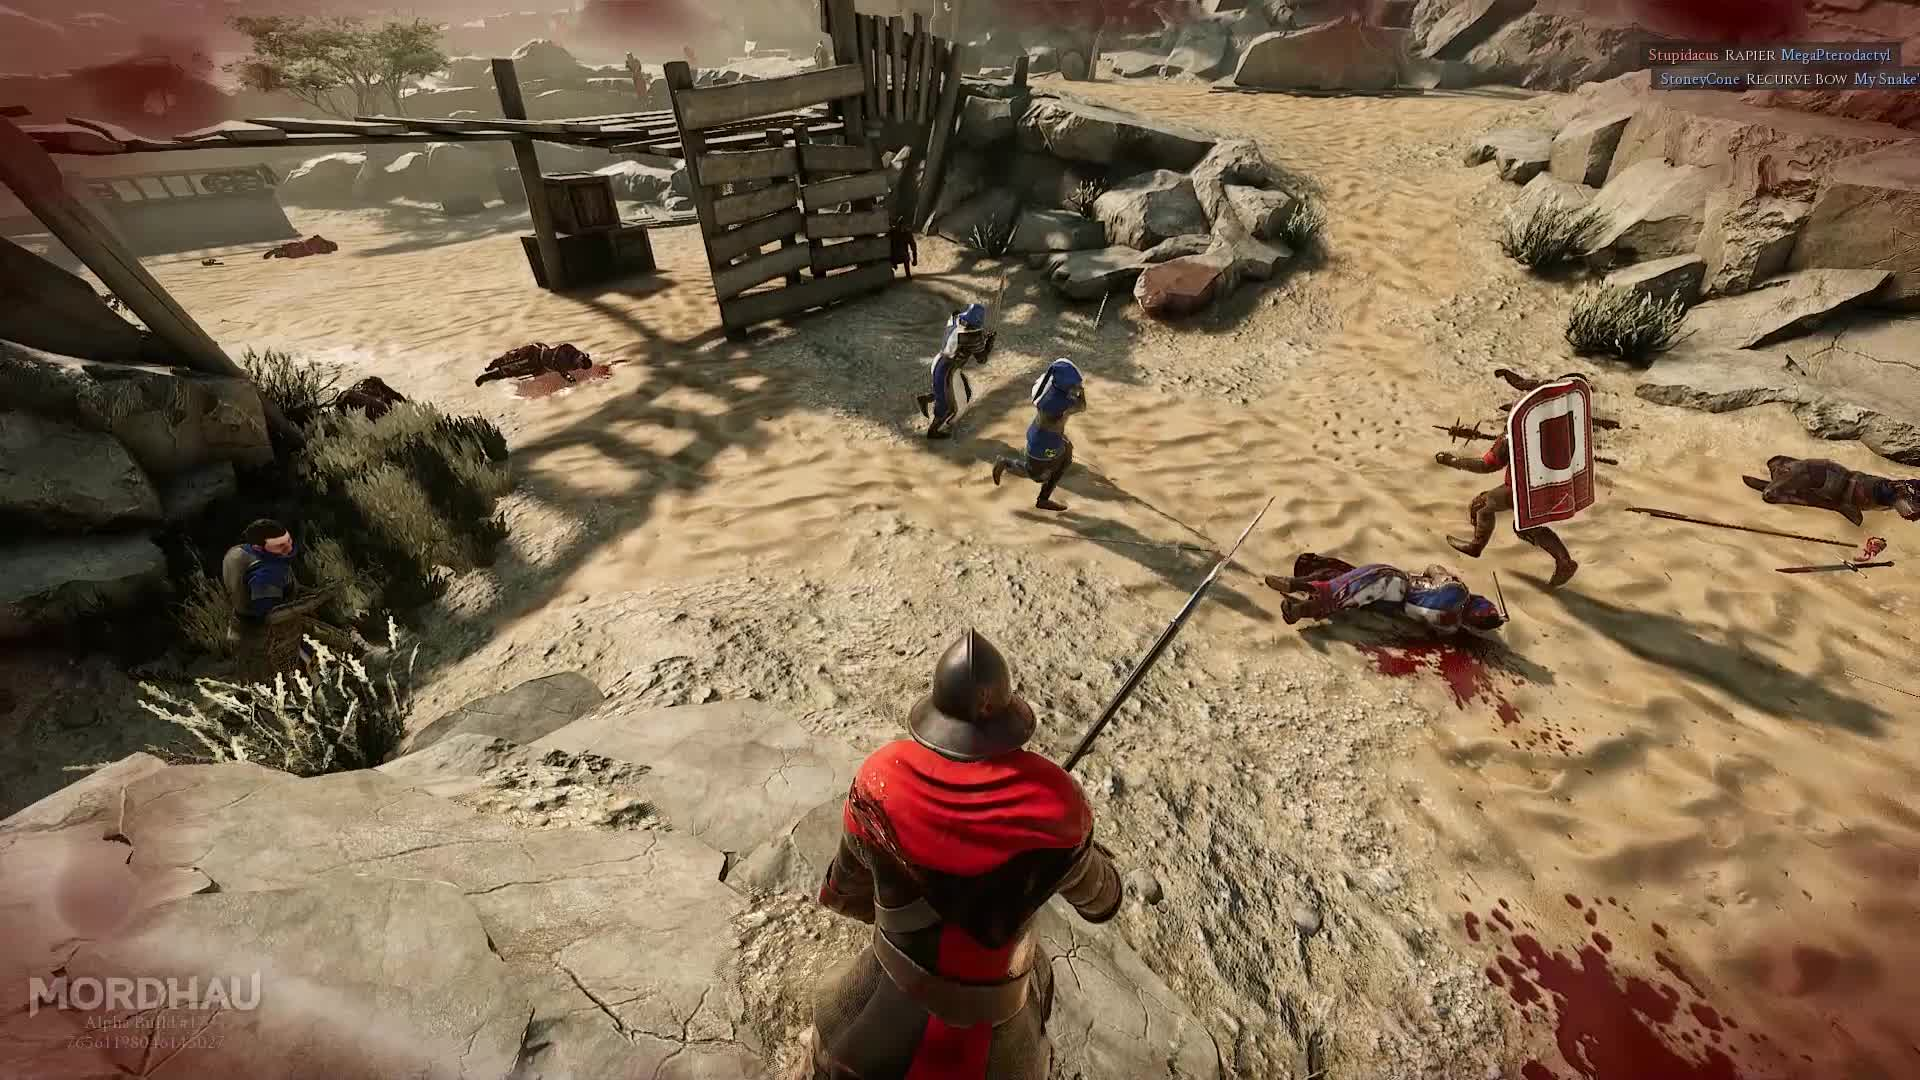 fight, fighting, gore, medieval, mordhau, sword, head flies GIFs